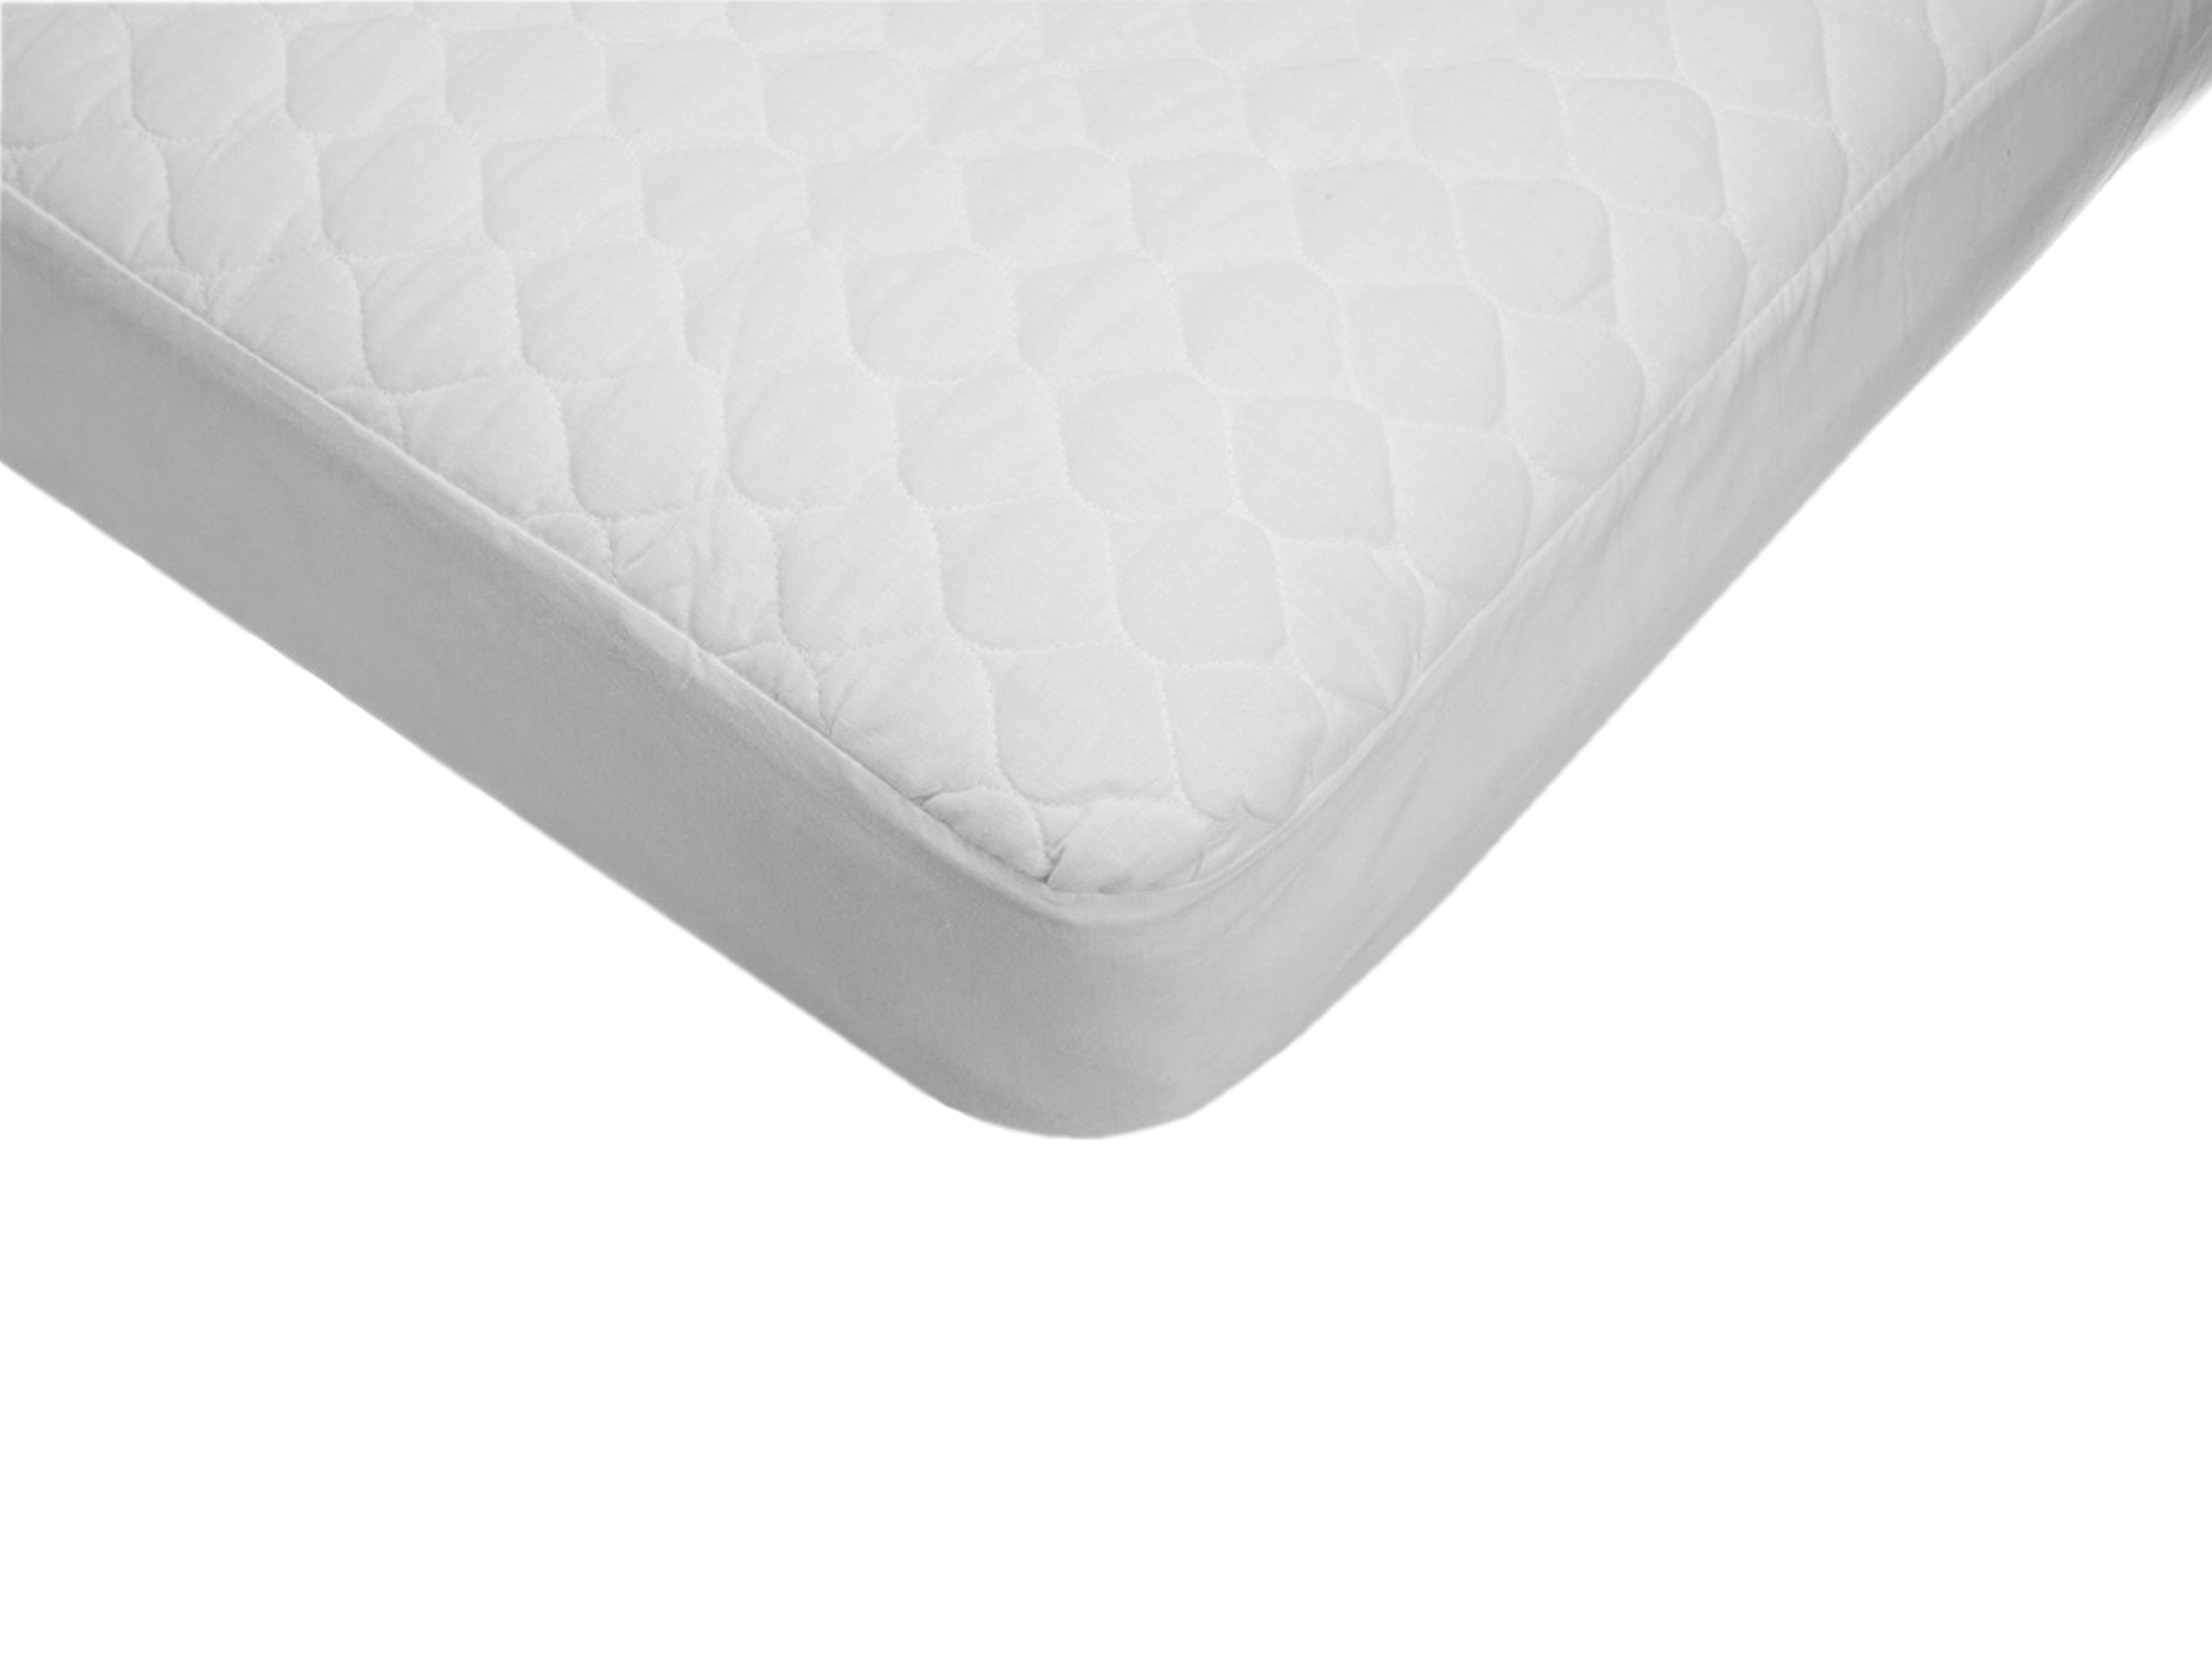 TL Care Quilted Fitted Waterproof Crib Mattress Pad Cover